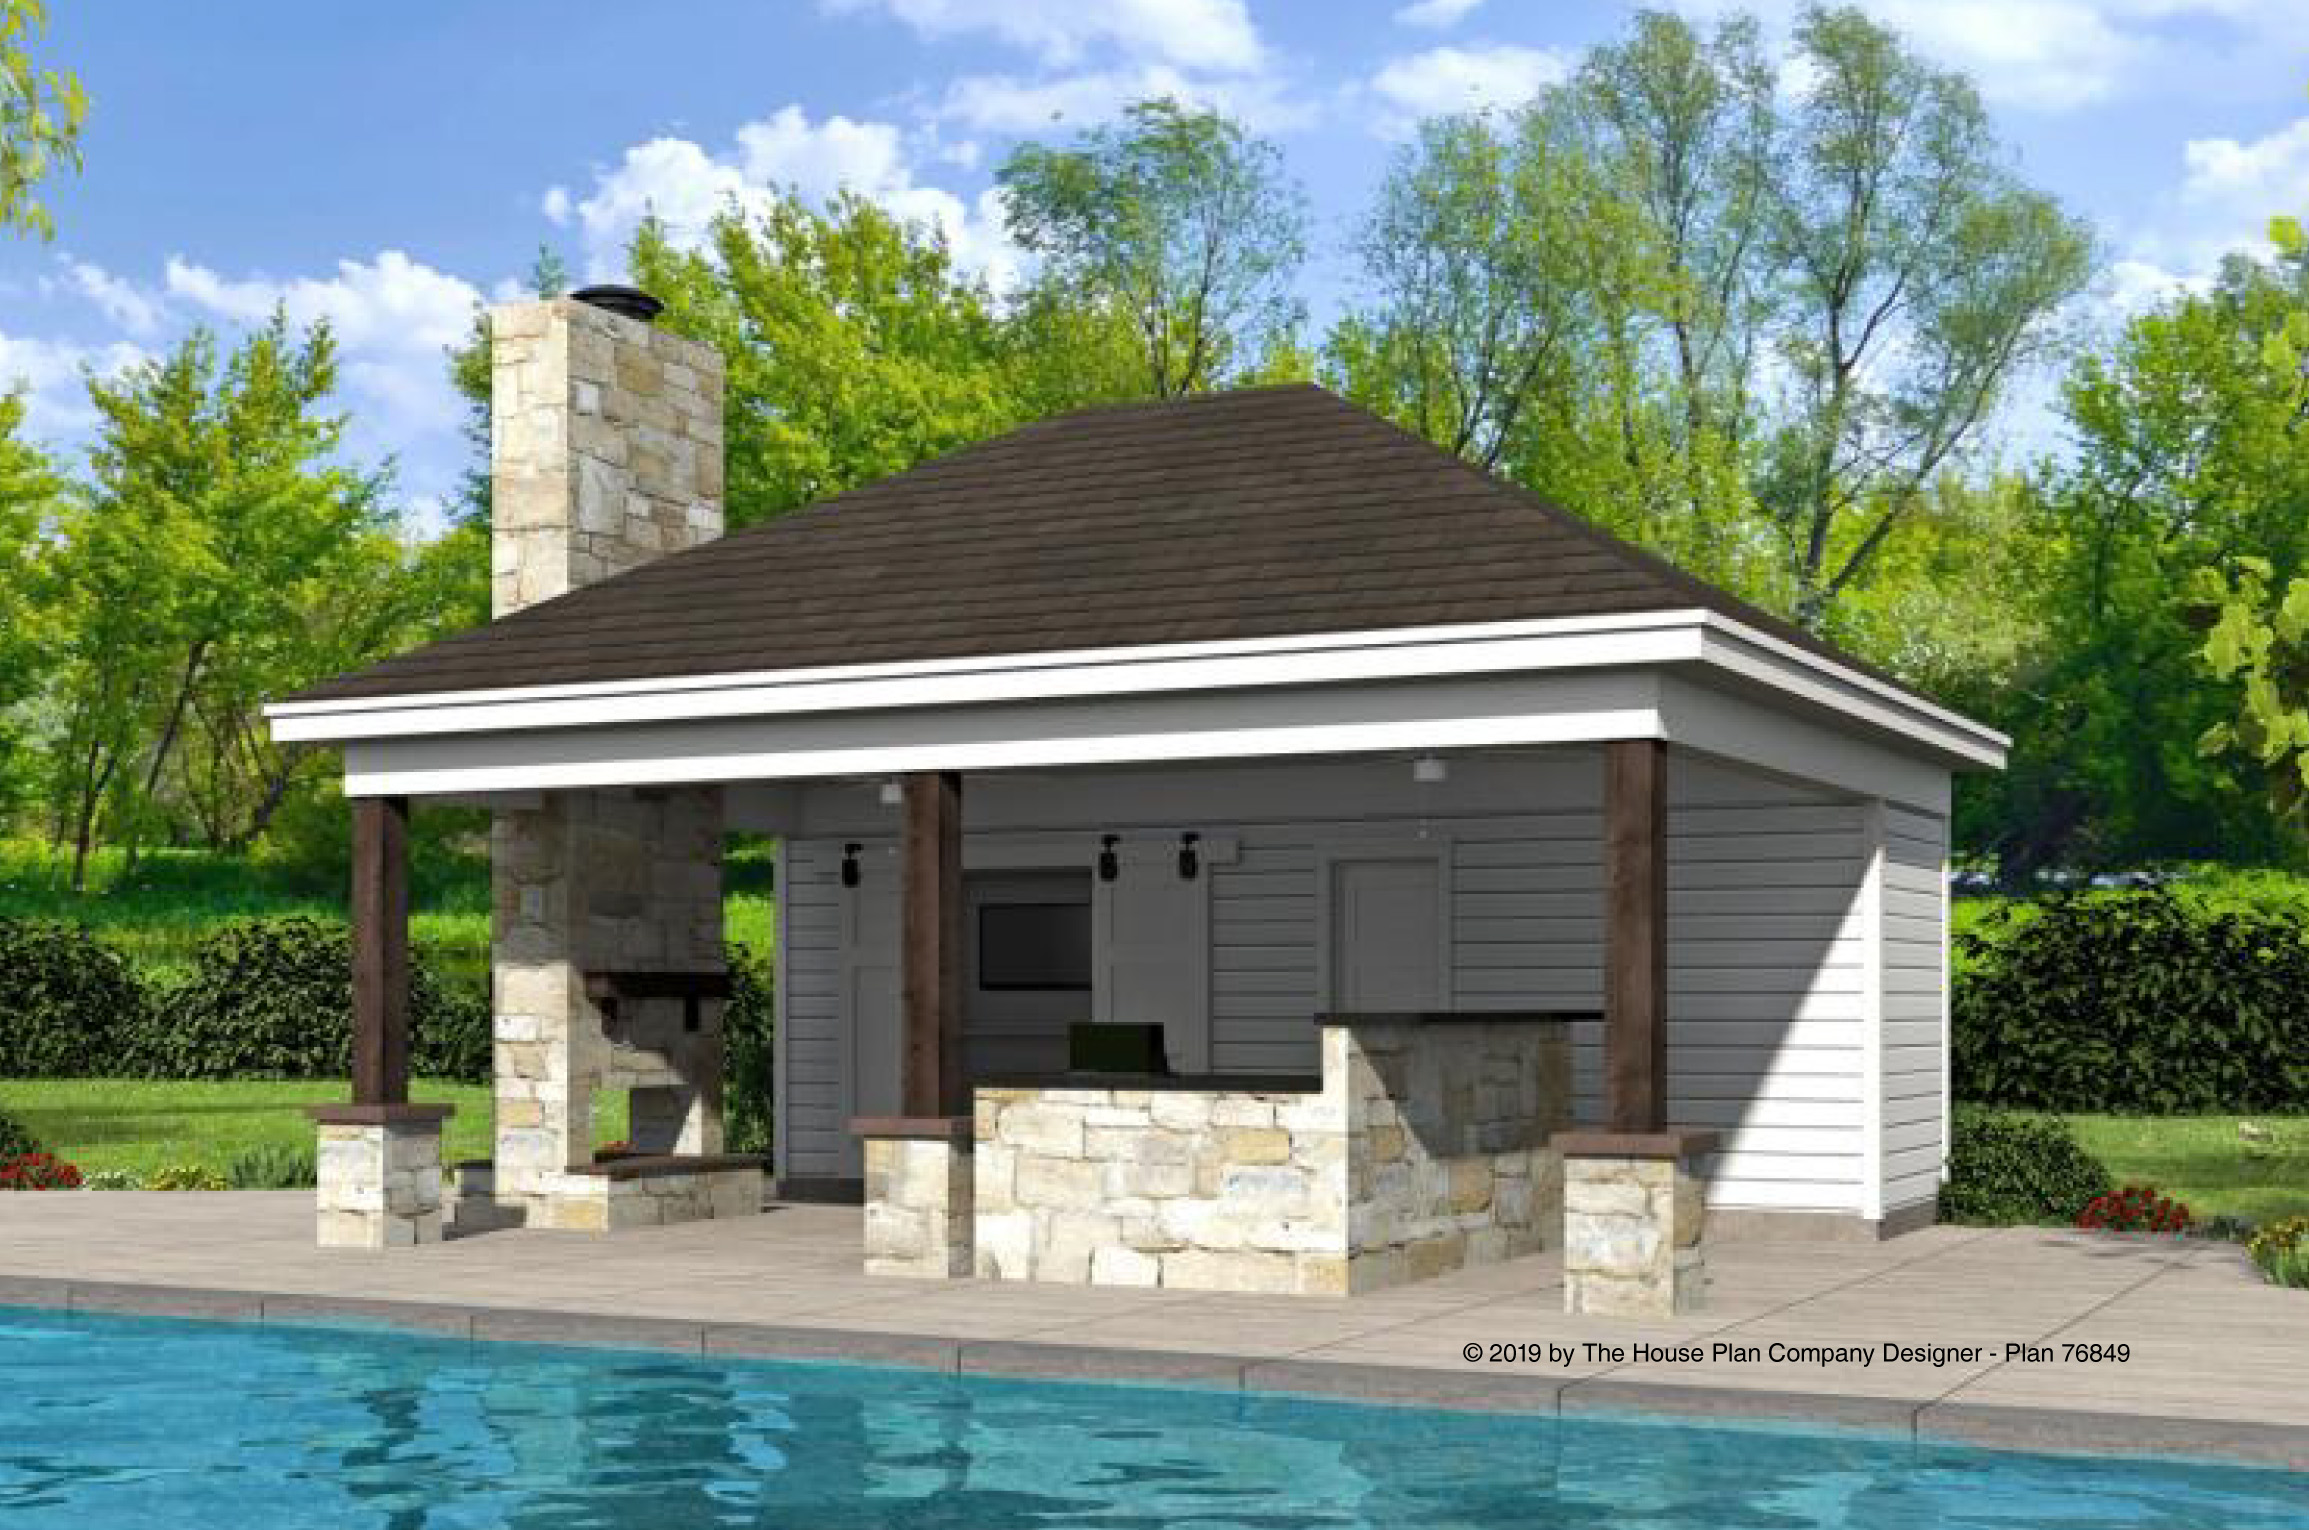 Accessory Structures, Granny Flats, Pool Houses, ADU